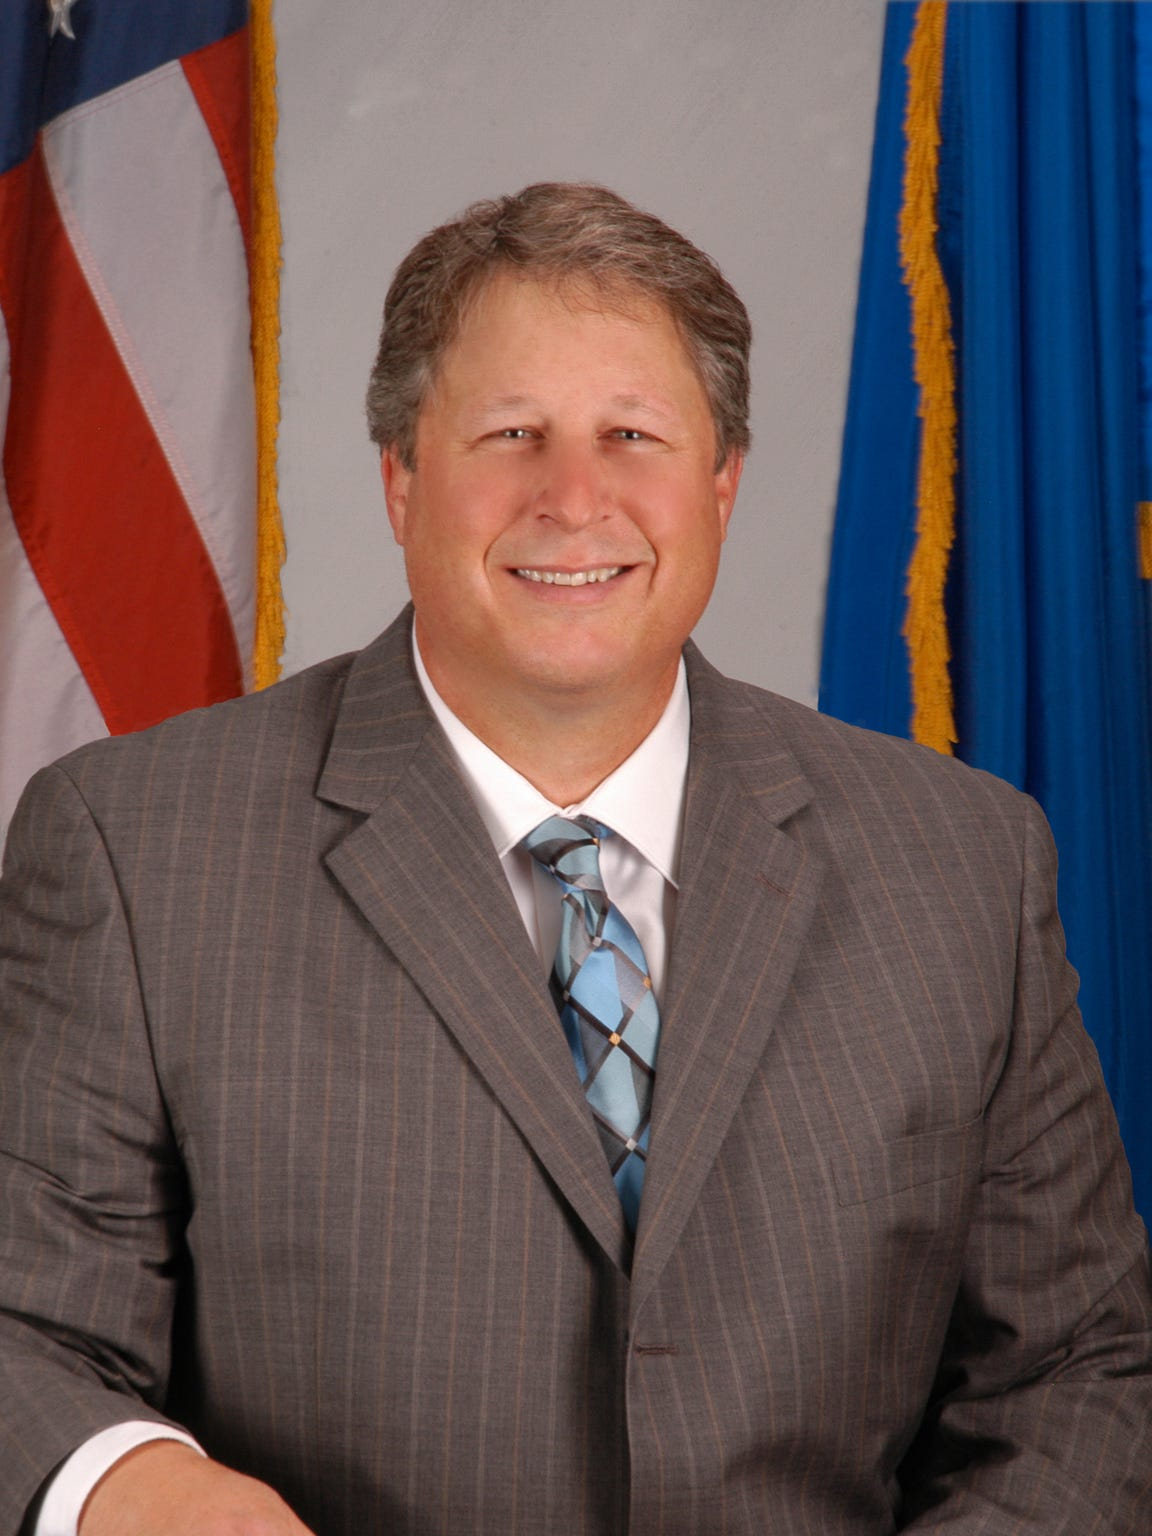 Eugene Hoover, Republican candidate for Senate District 15.